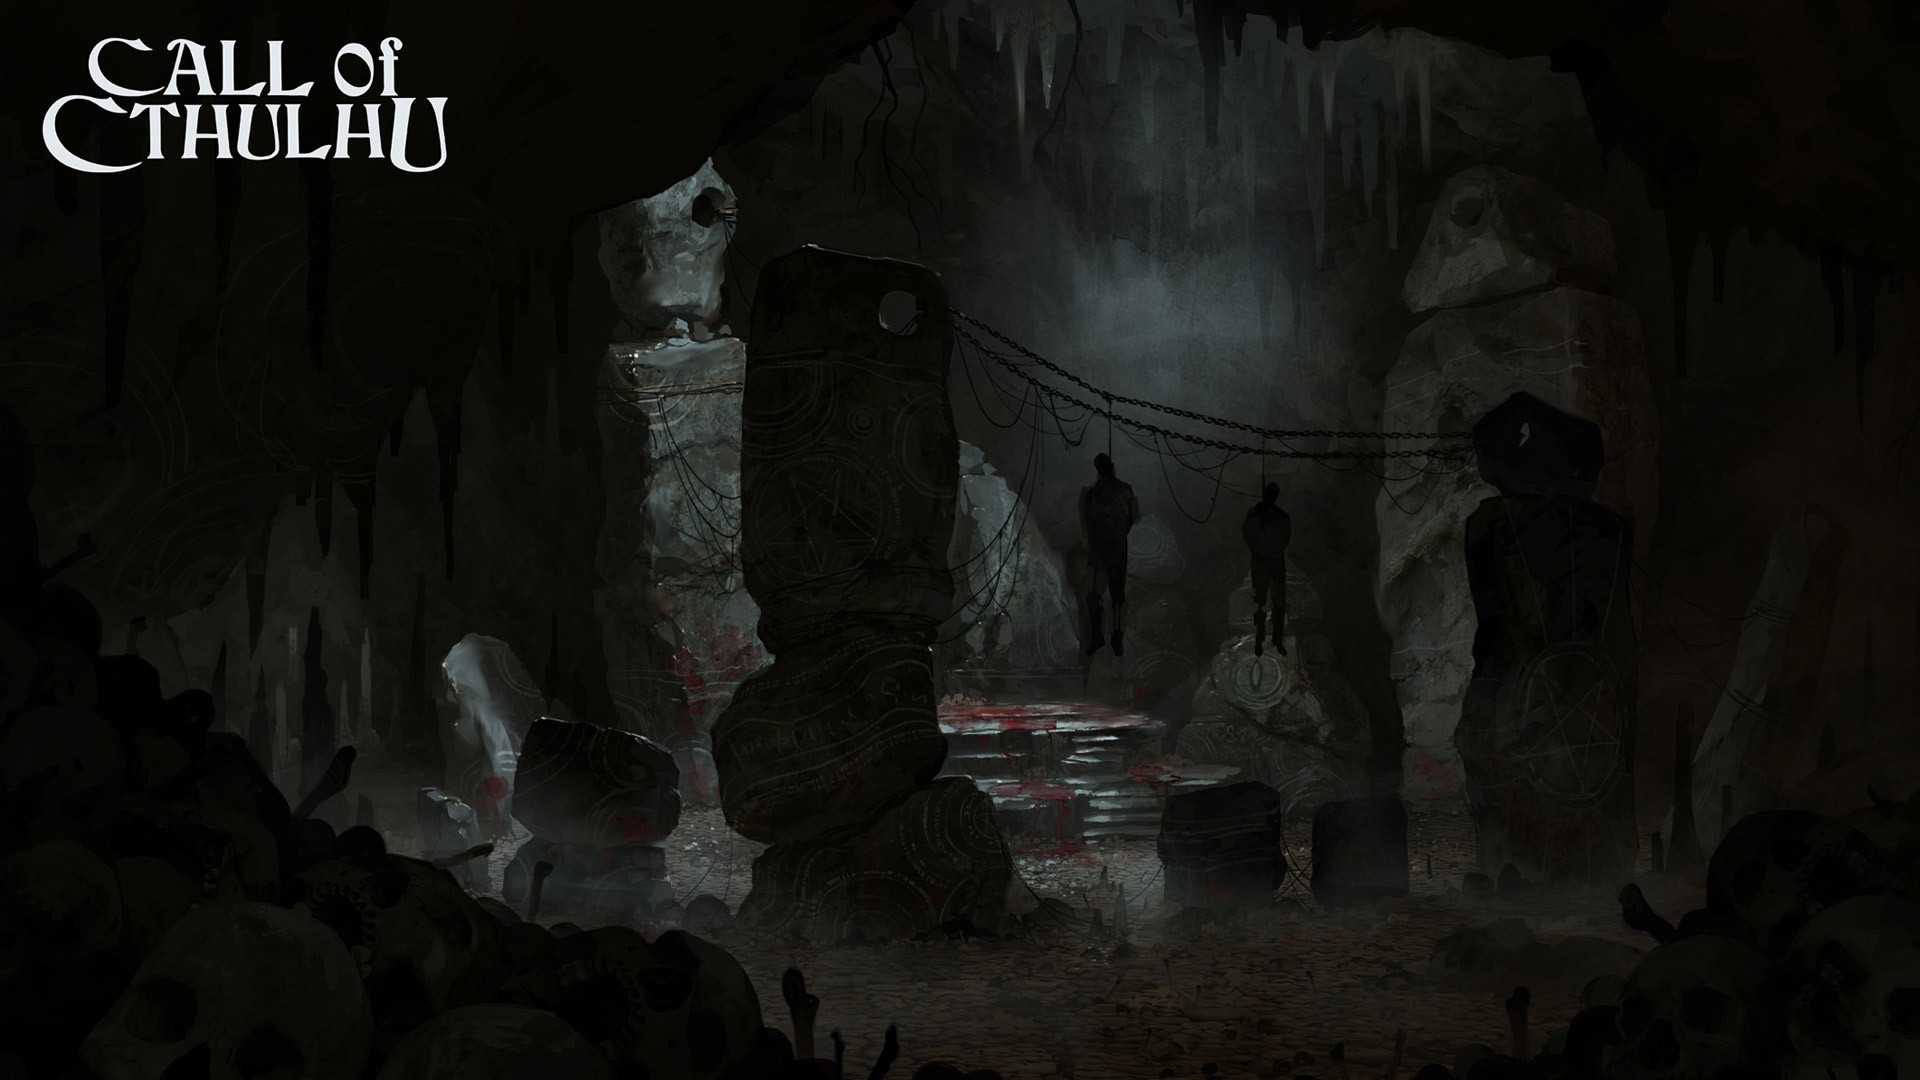 1920x1080 Free Call of Cthulhu Wallpaper in